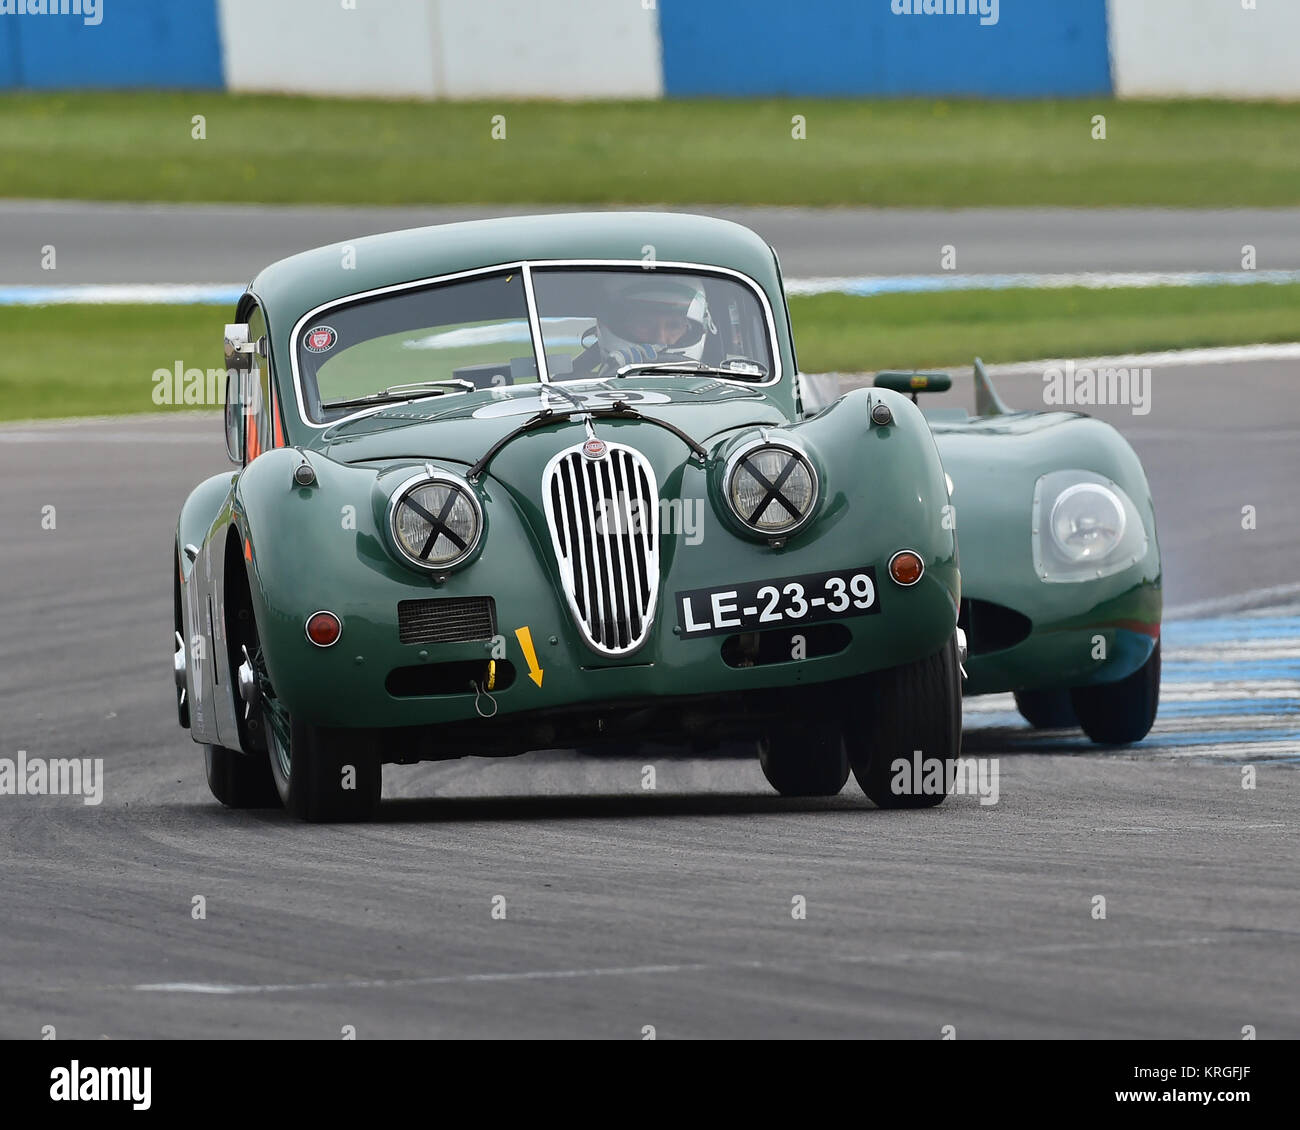 1954 Jaguar Xk140: Jaguar Xk140 Racing Car Stock Photos & Jaguar Xk140 Racing